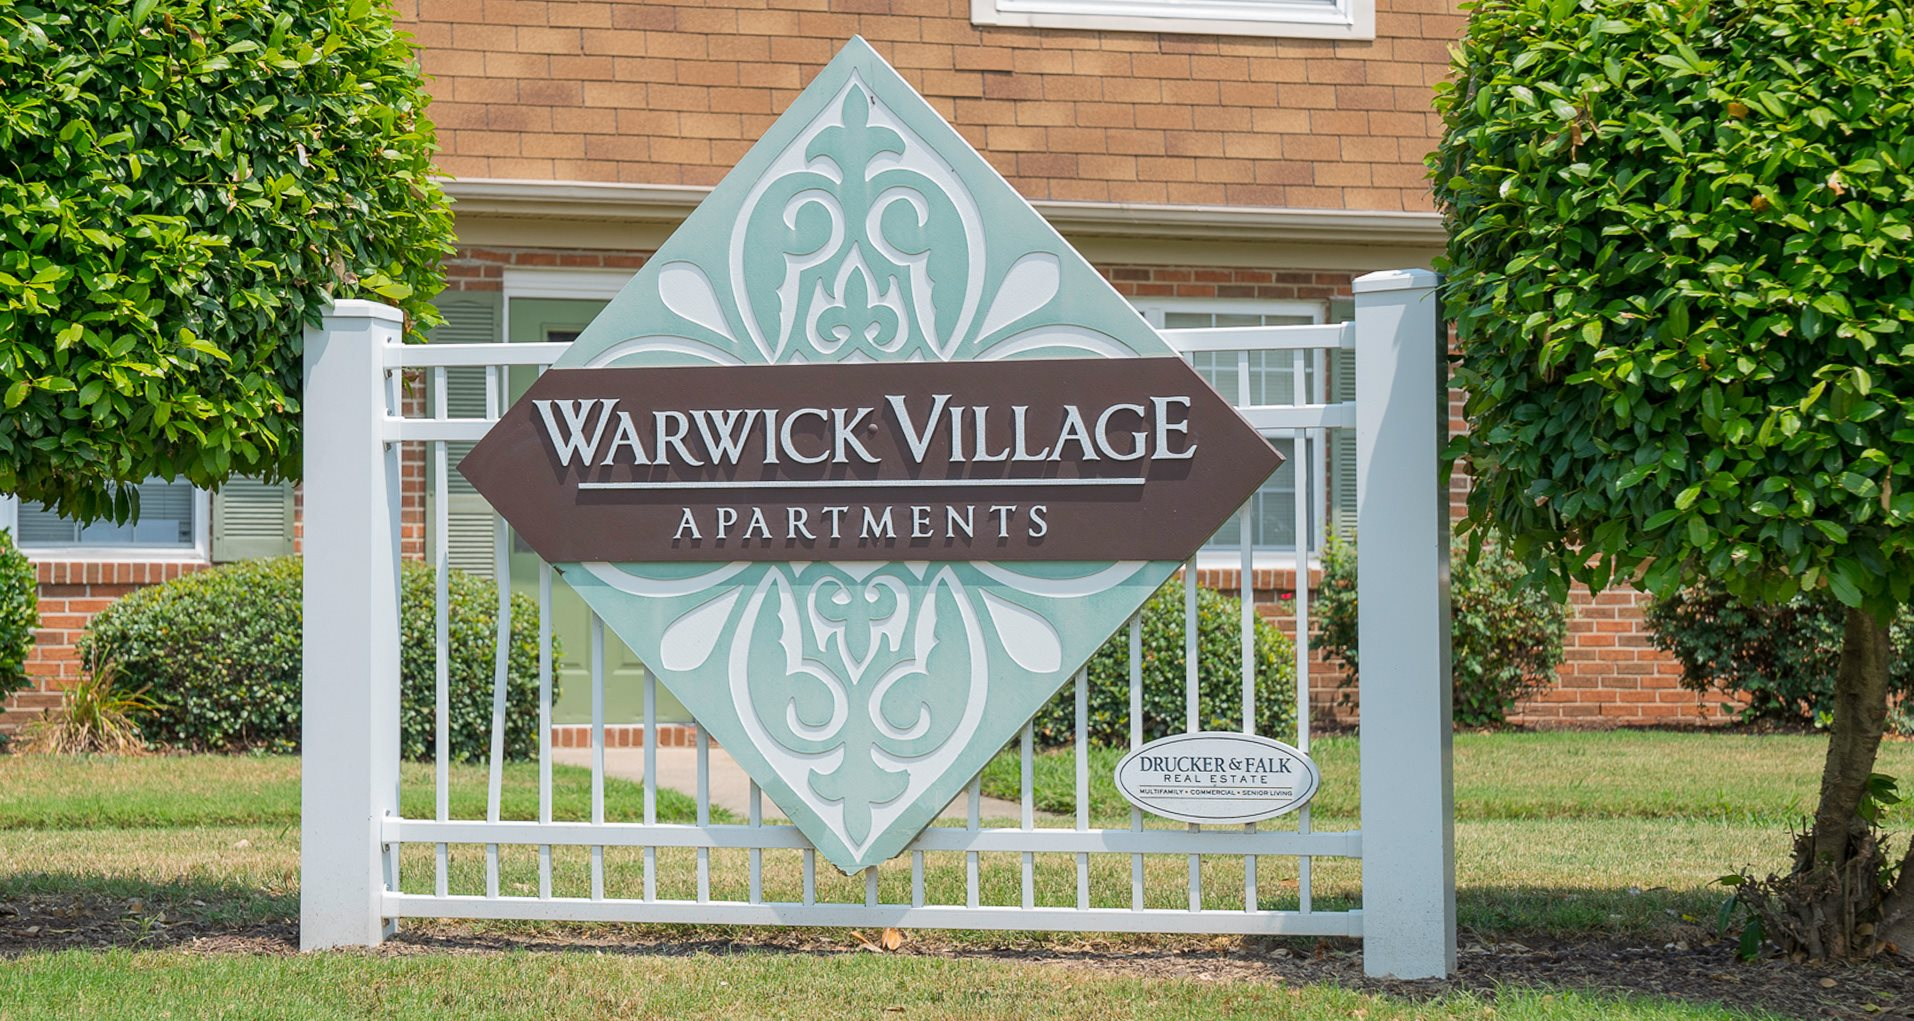 Sign at Warwick Village Apartments